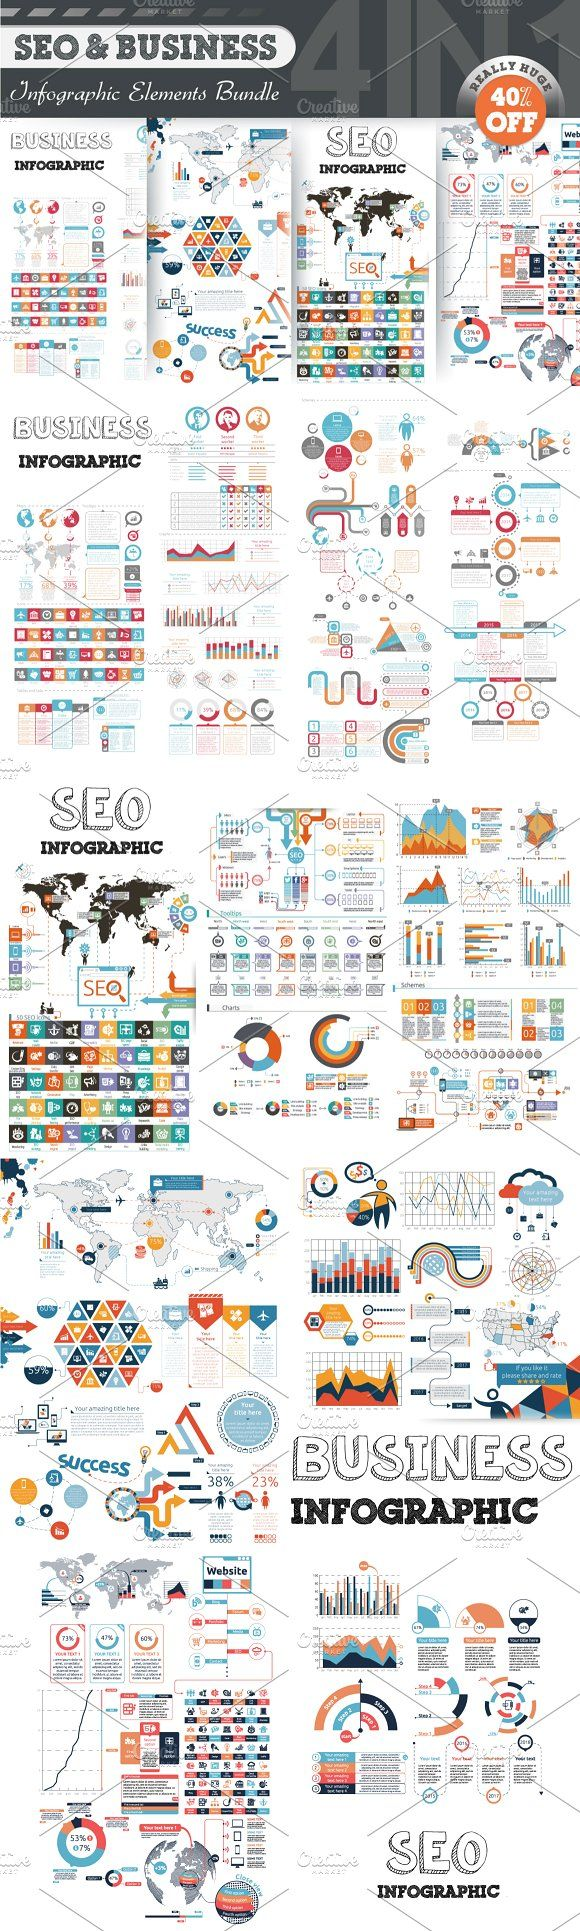 @newkoko2020 40% OFF Infographic Bundle by Infographic Paradise on @creativemarket #infographic #infographics #bundle #download #design #template #set #presentation #vector #buy #graph #discount